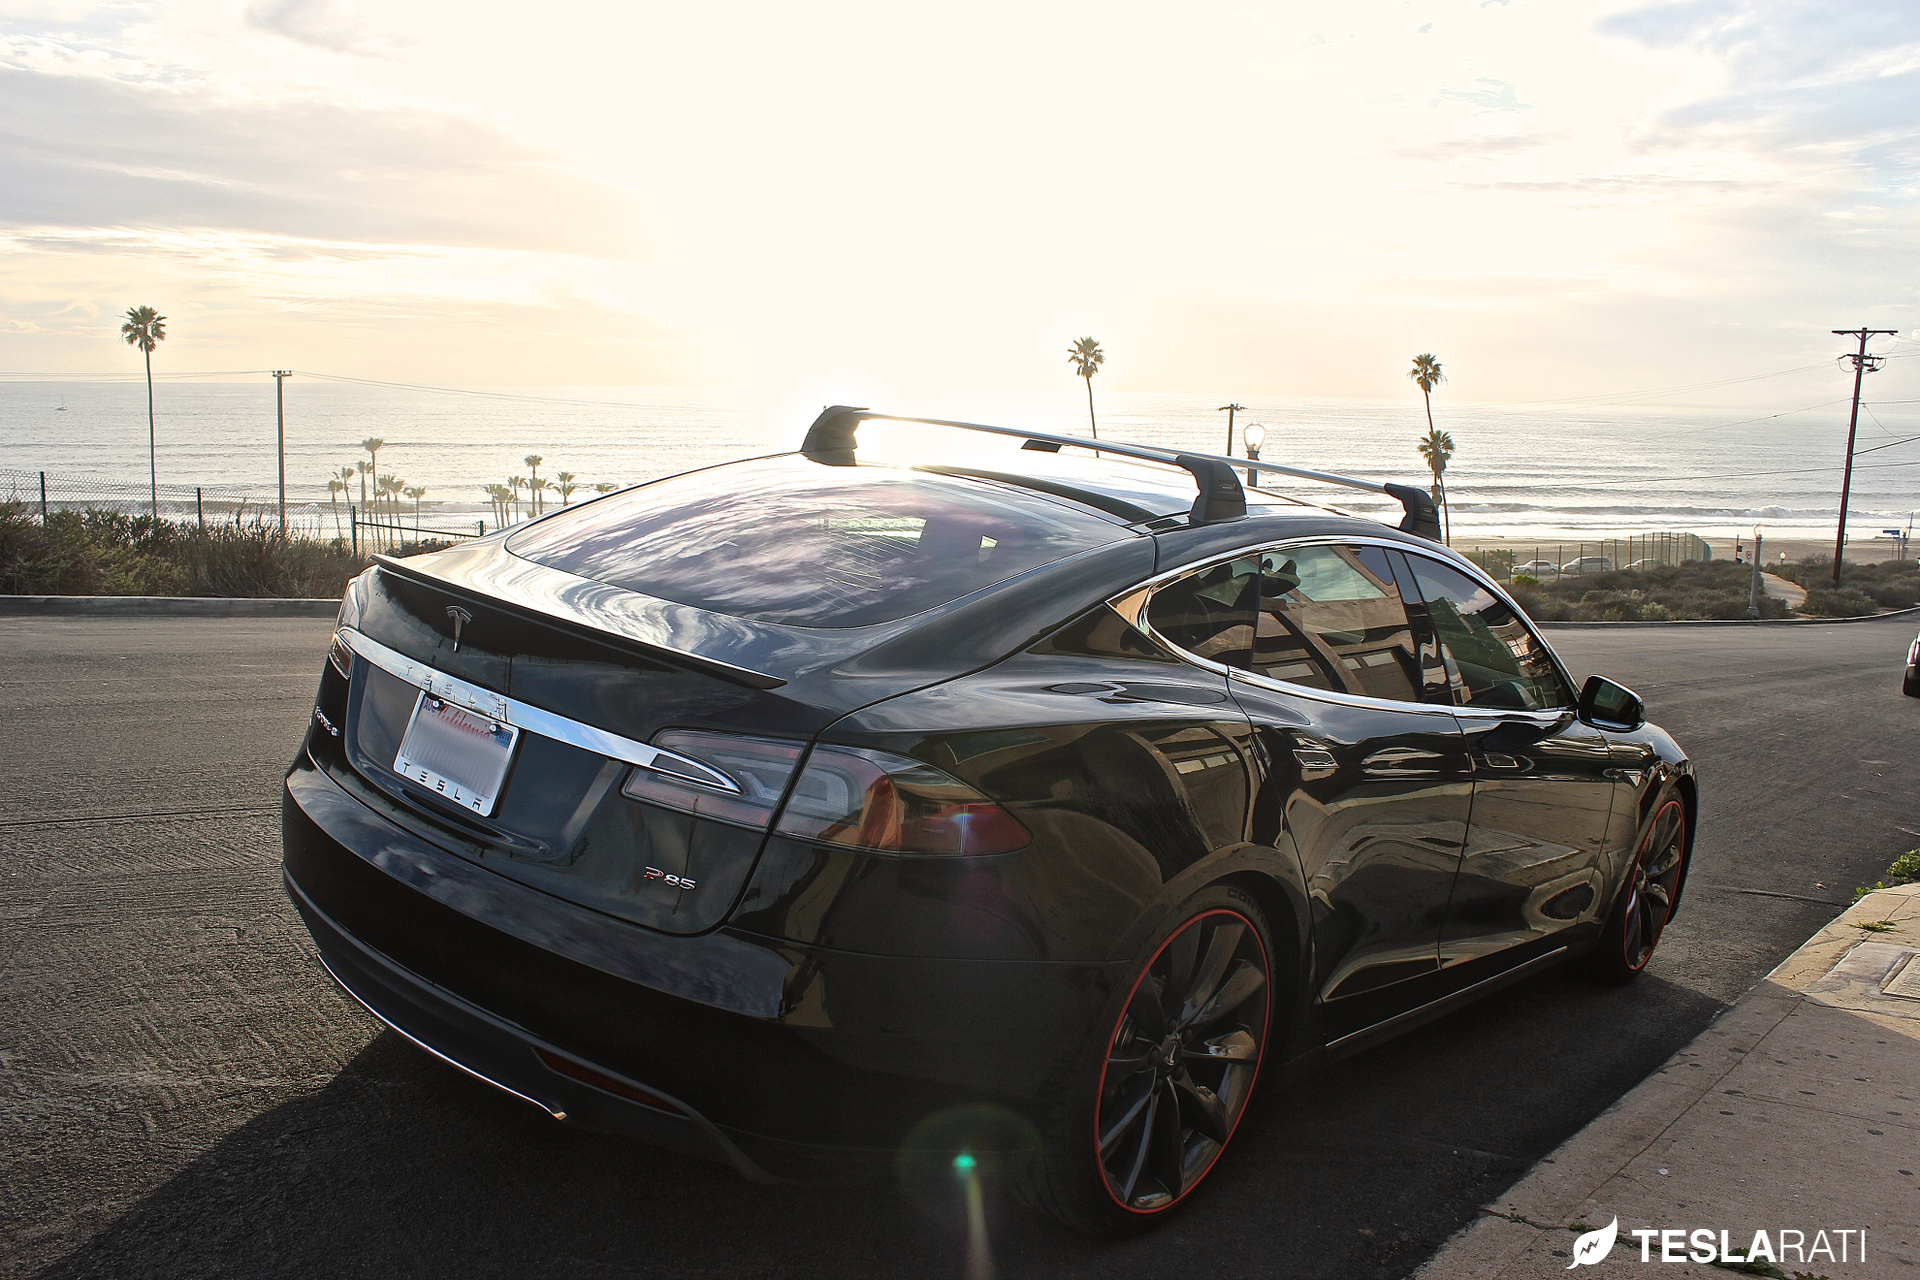 Tesla-Model-S-Whispbar-Roof-Rack-Top